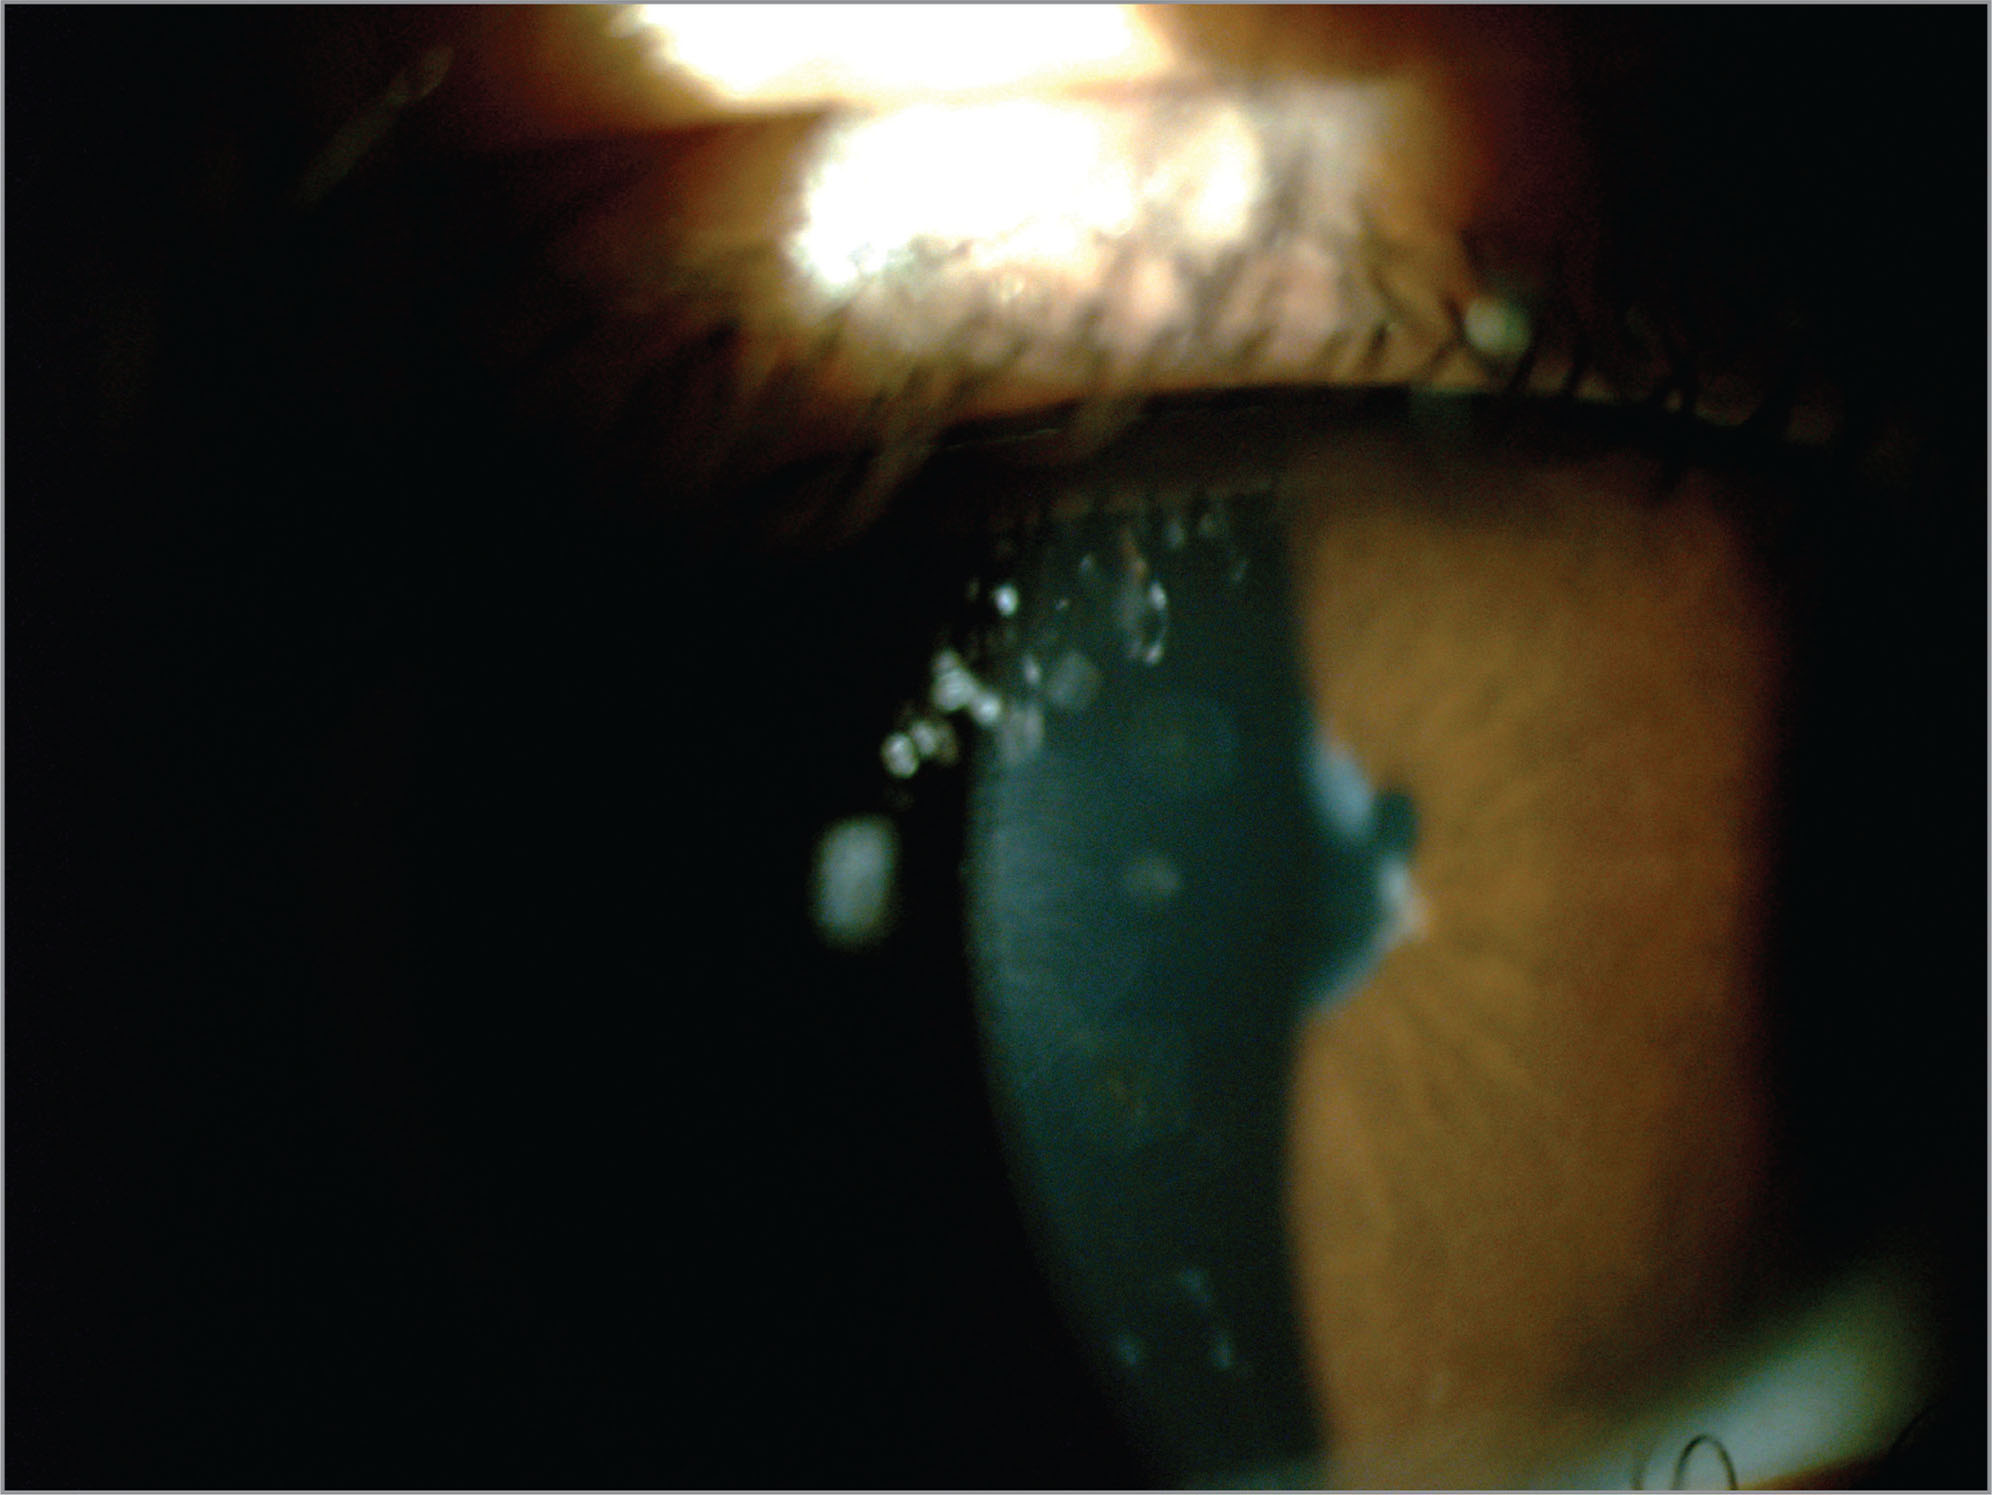 Case 3. Anterior biomicroscopy image of an eye with uveitis in Blau-Jabs syndrome. Nummular corneal opacities and posterior synechiae are seen.